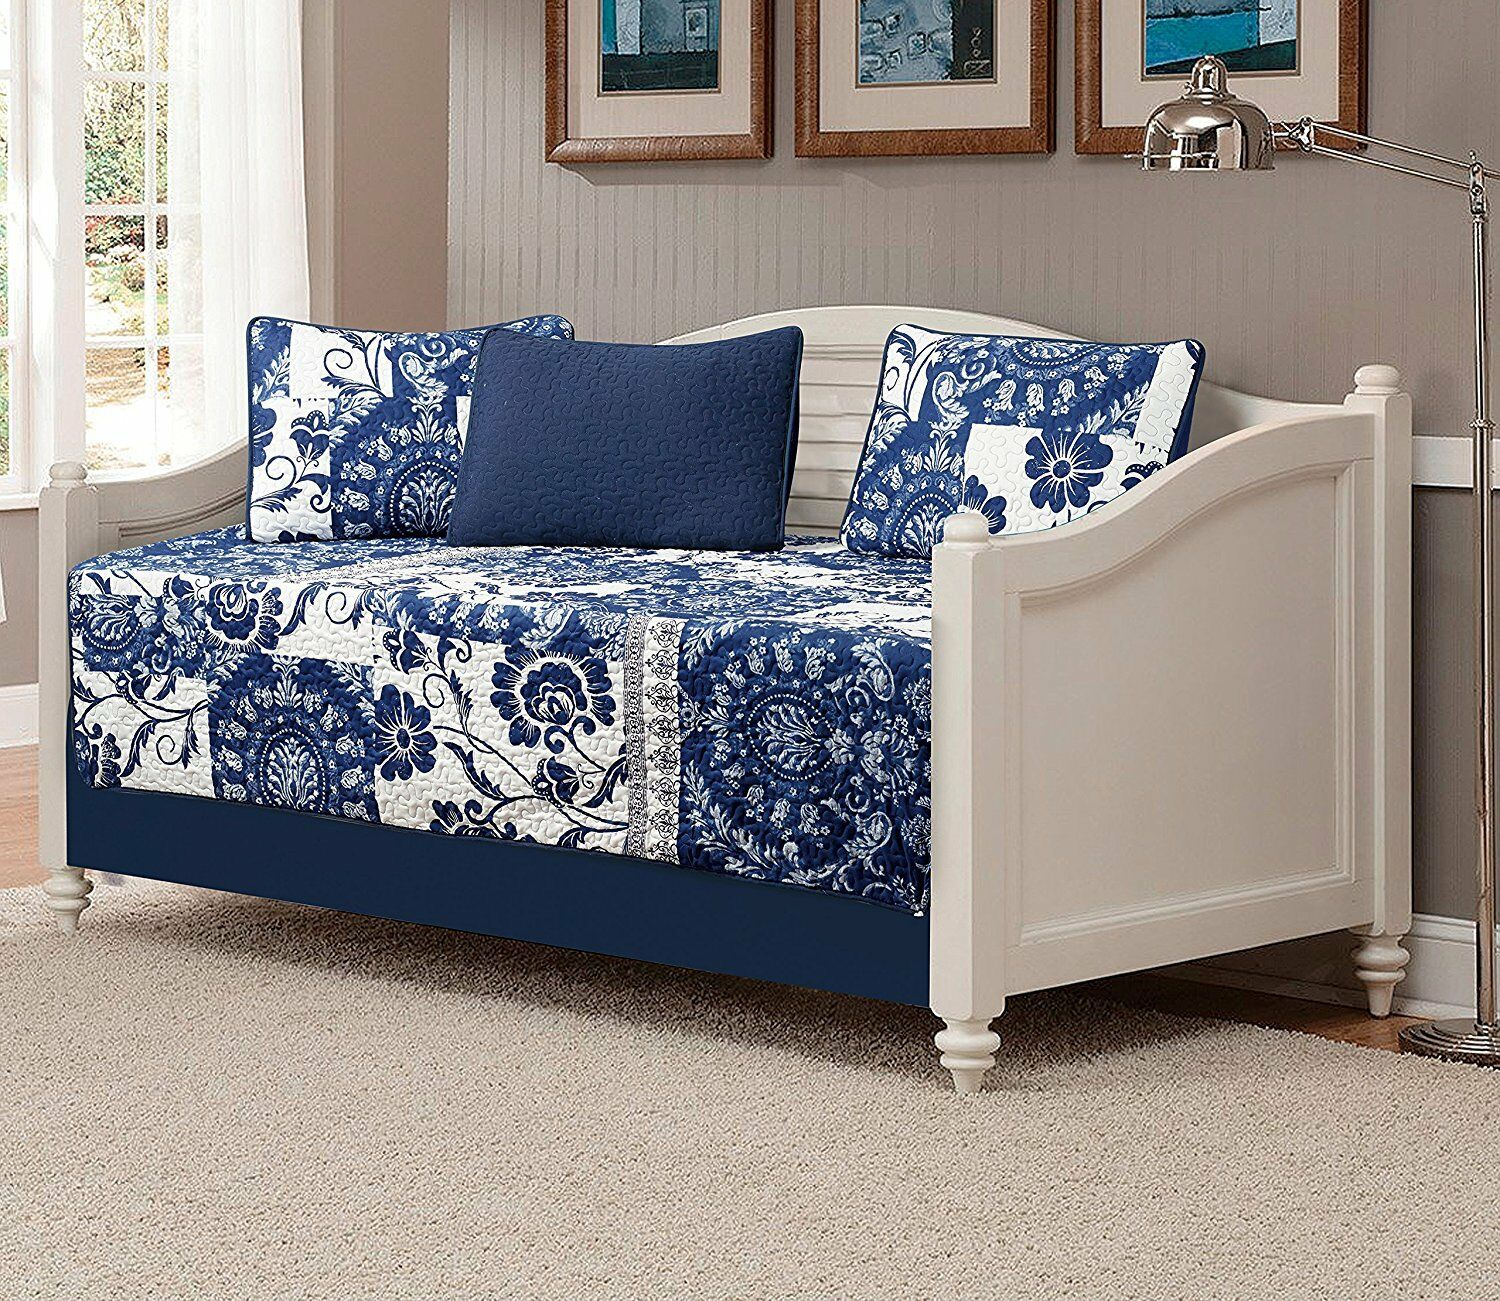 Fancy Linen 5pc Daybed Quilted Floral White Navy blueeee New